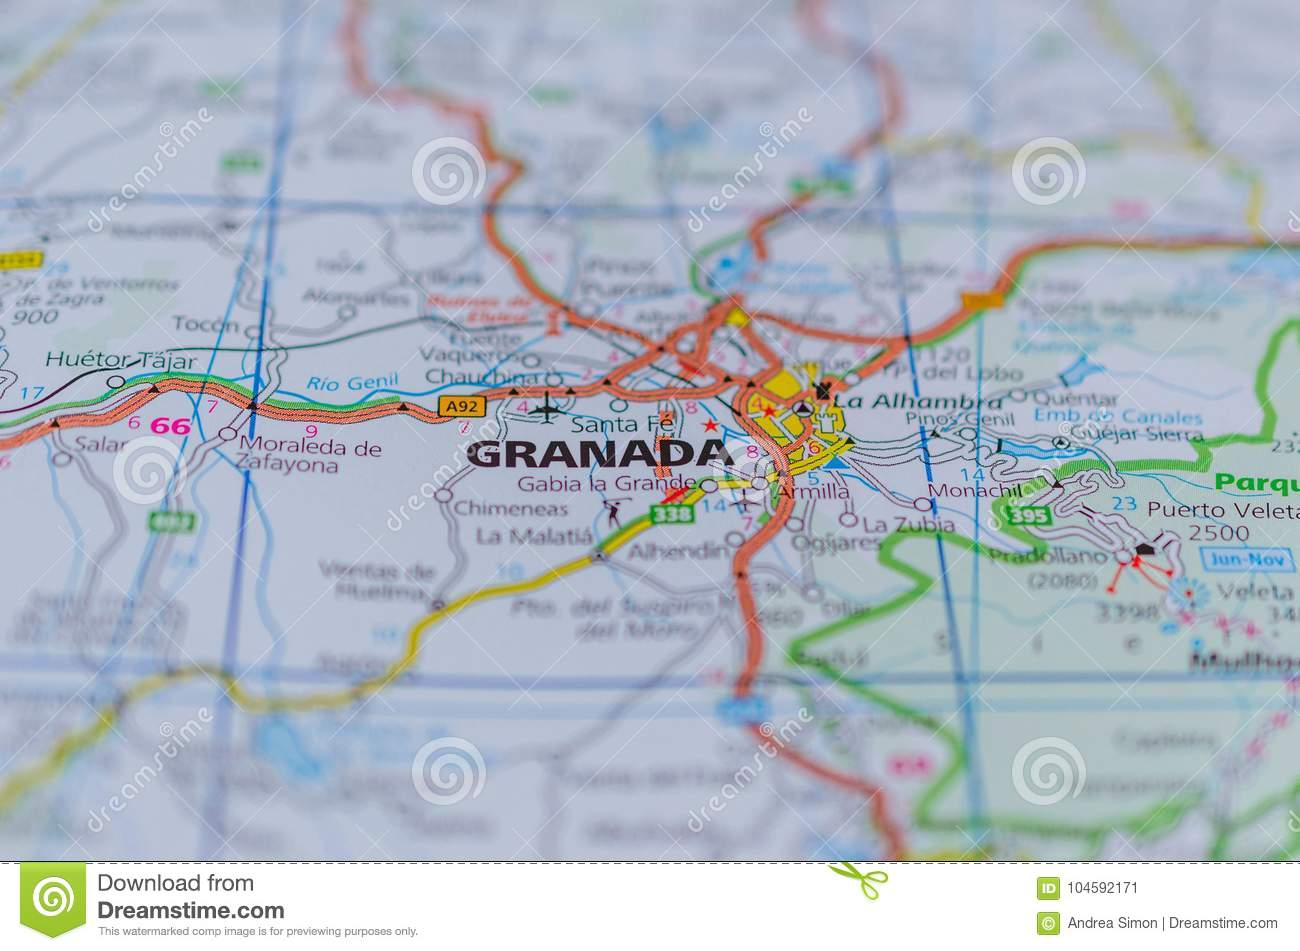 Political Map Of Spain 2017.Granada On Map Stock Image Image Of Macro Political 104592171